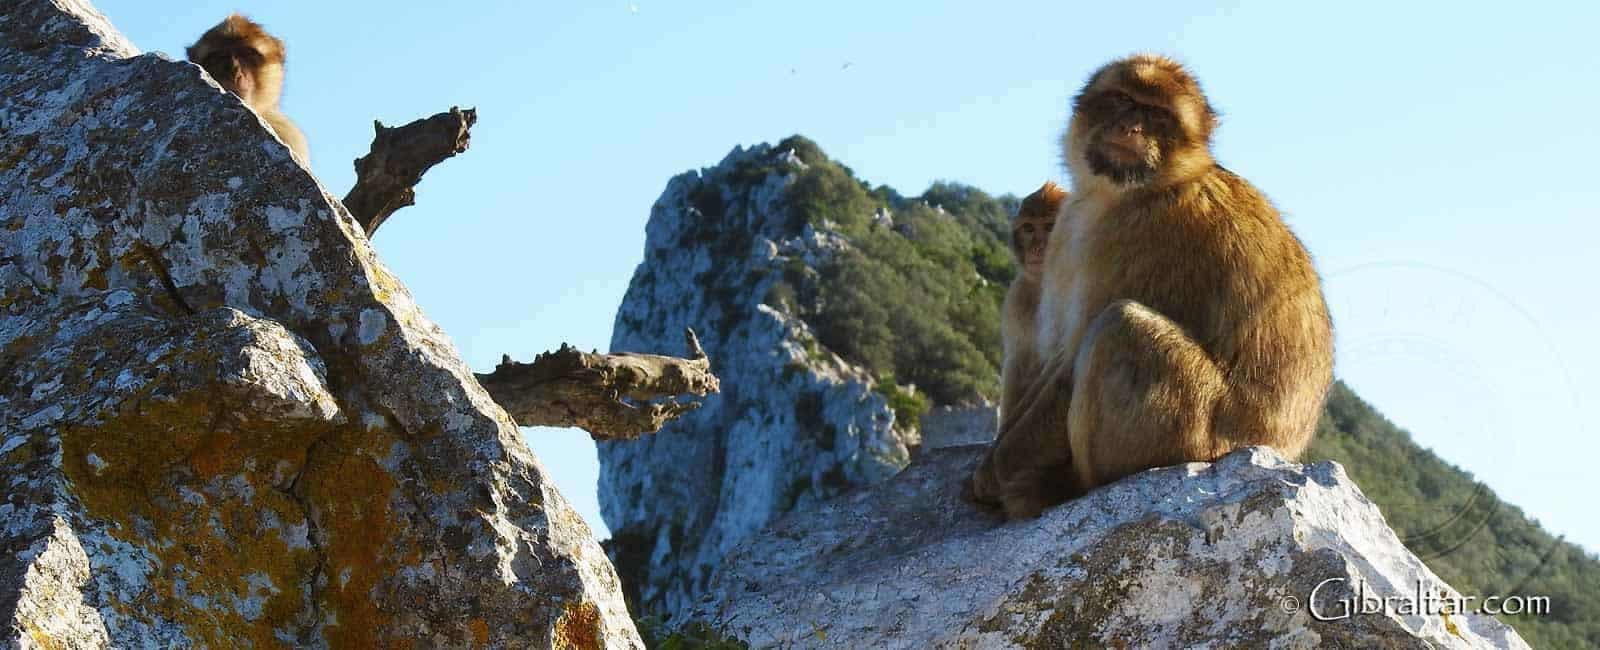 Gibraltar the-upper-rock-nature-reserve-monkeys